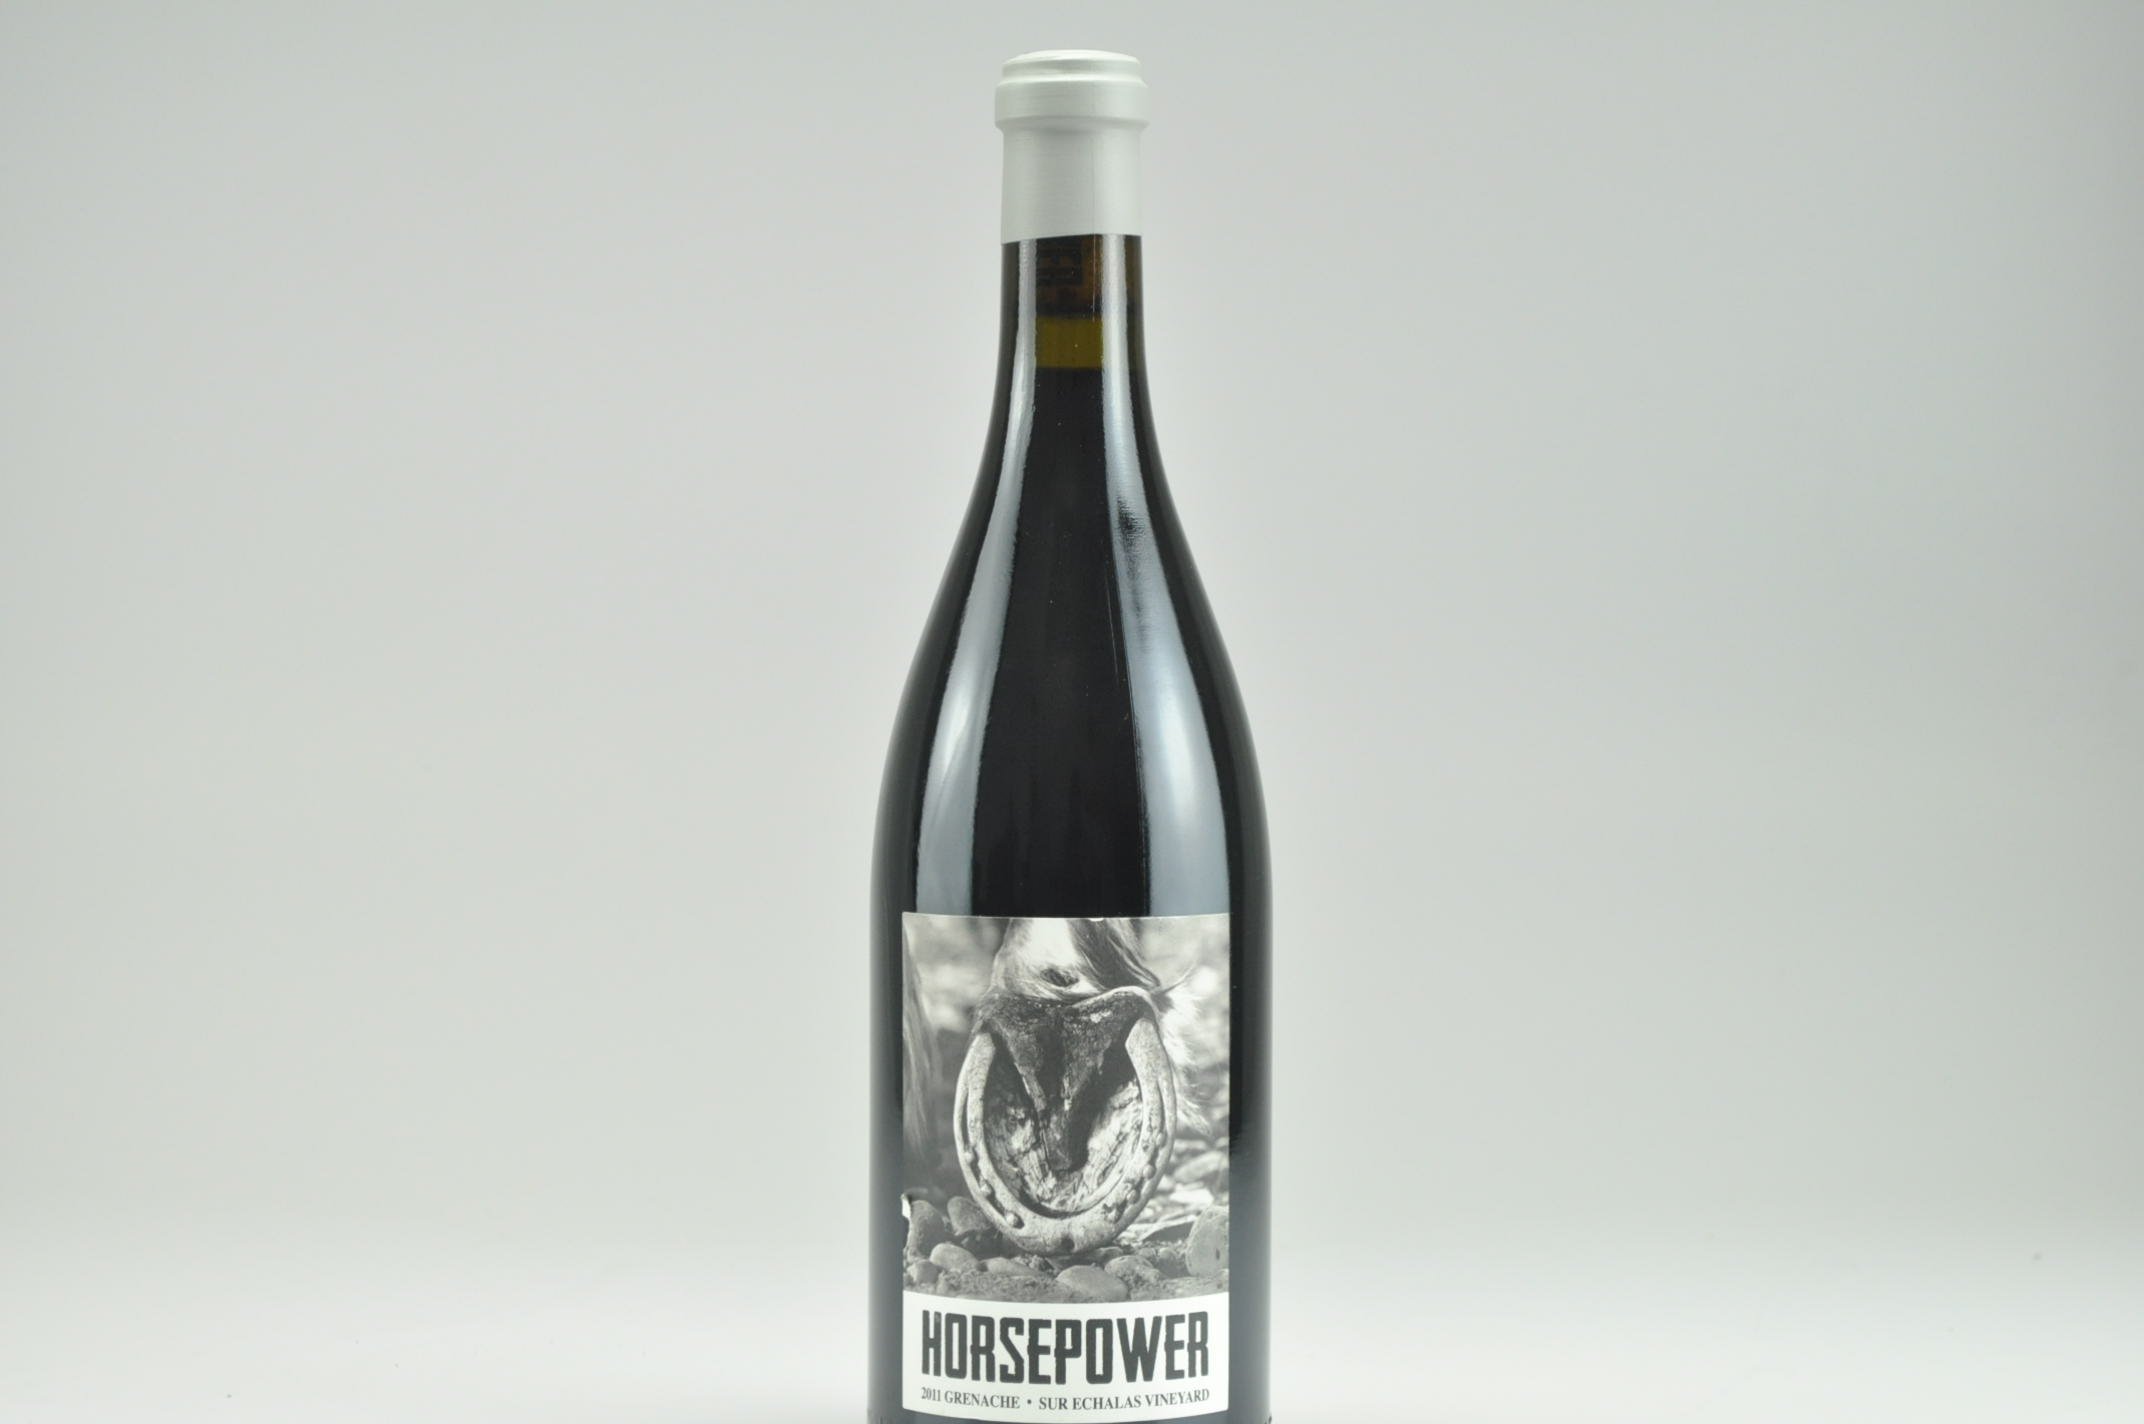 2011 Horsepower Grenache Sur Echalas Vineyard, Walla Walla Valley RP--97